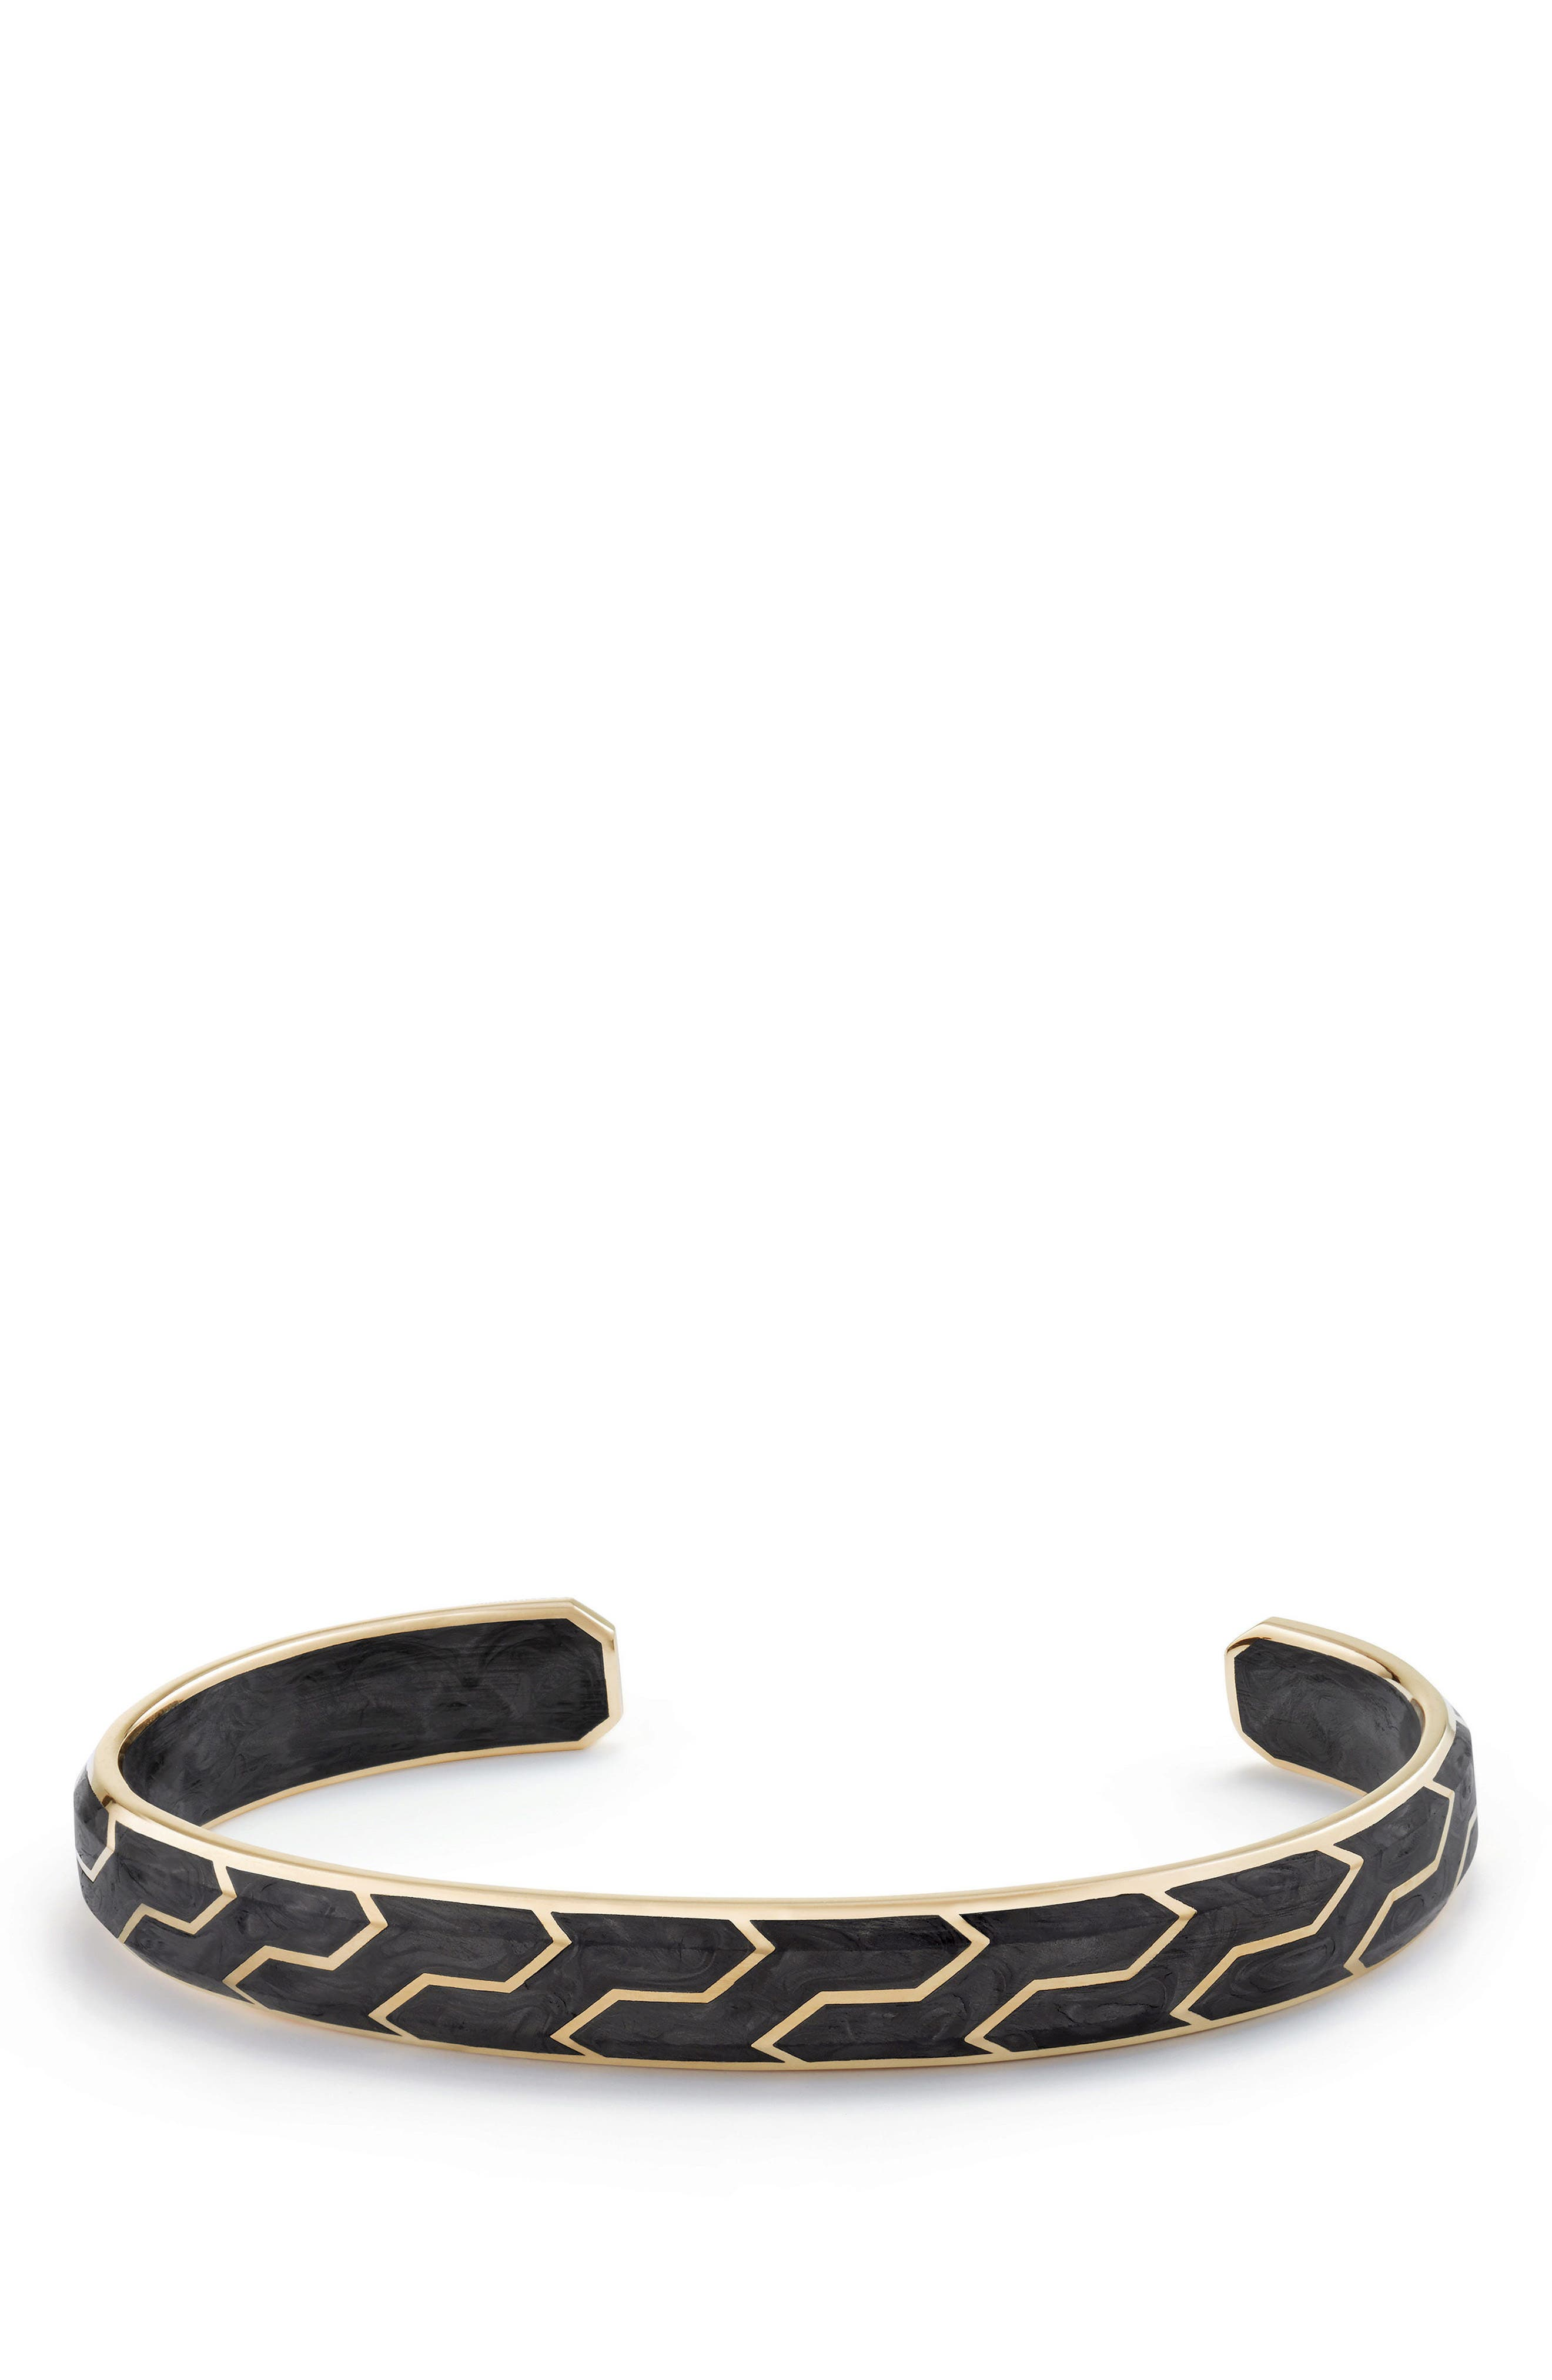 David Yurman Forged Carbon Cuff with 18K Gold